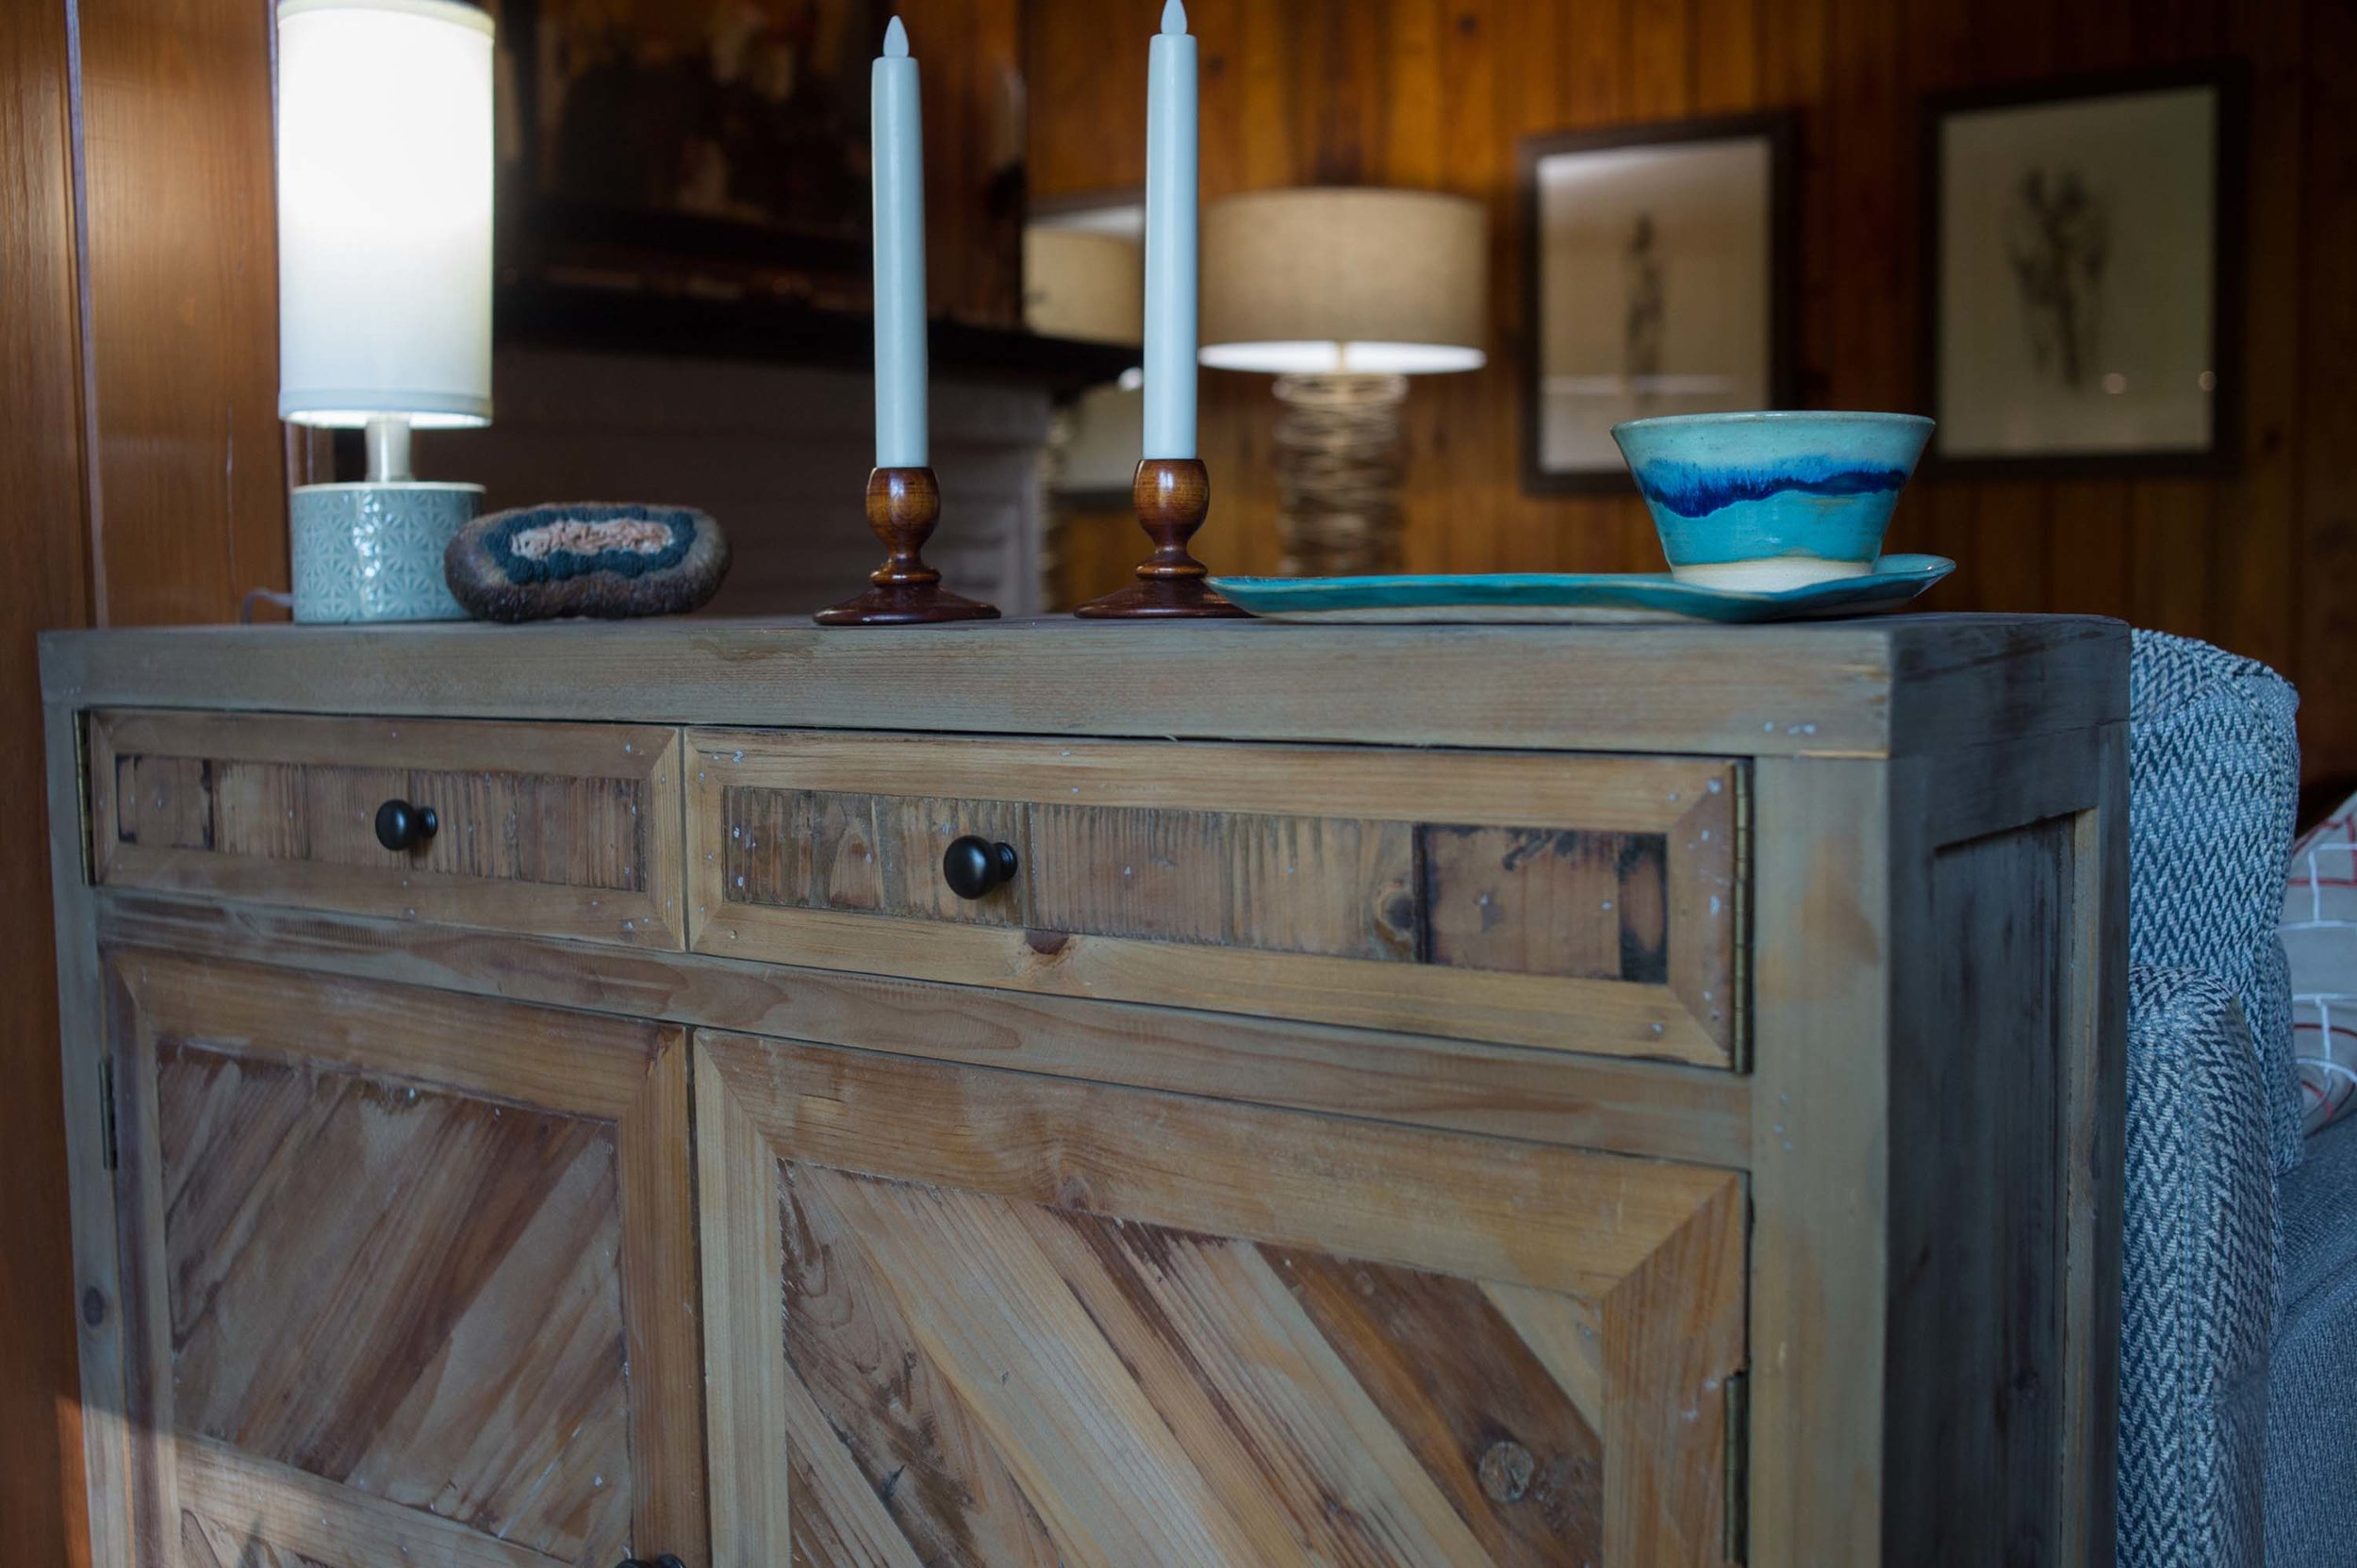 Wooden Buffet behind Sofa with small lamp, candlesticks and accessories.